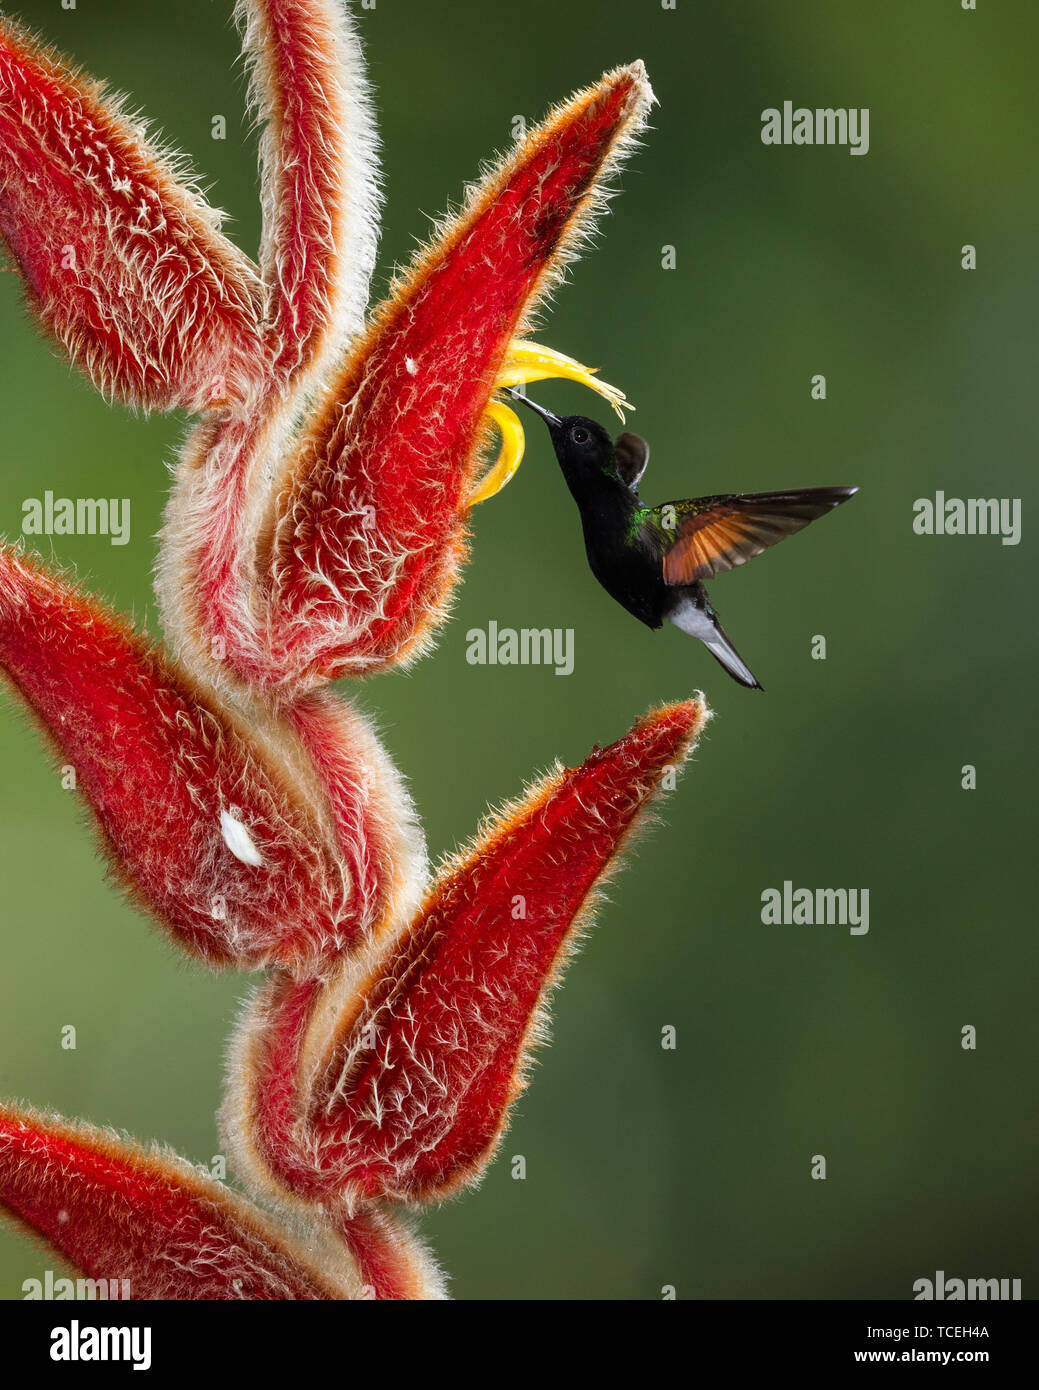 A Black-bellied Hummingbird - Euperusa nigriventris - approaches the tropical flower of a Hairy Heliconia, Heliconia vellerigera, to feed, and in the  - Stock Image